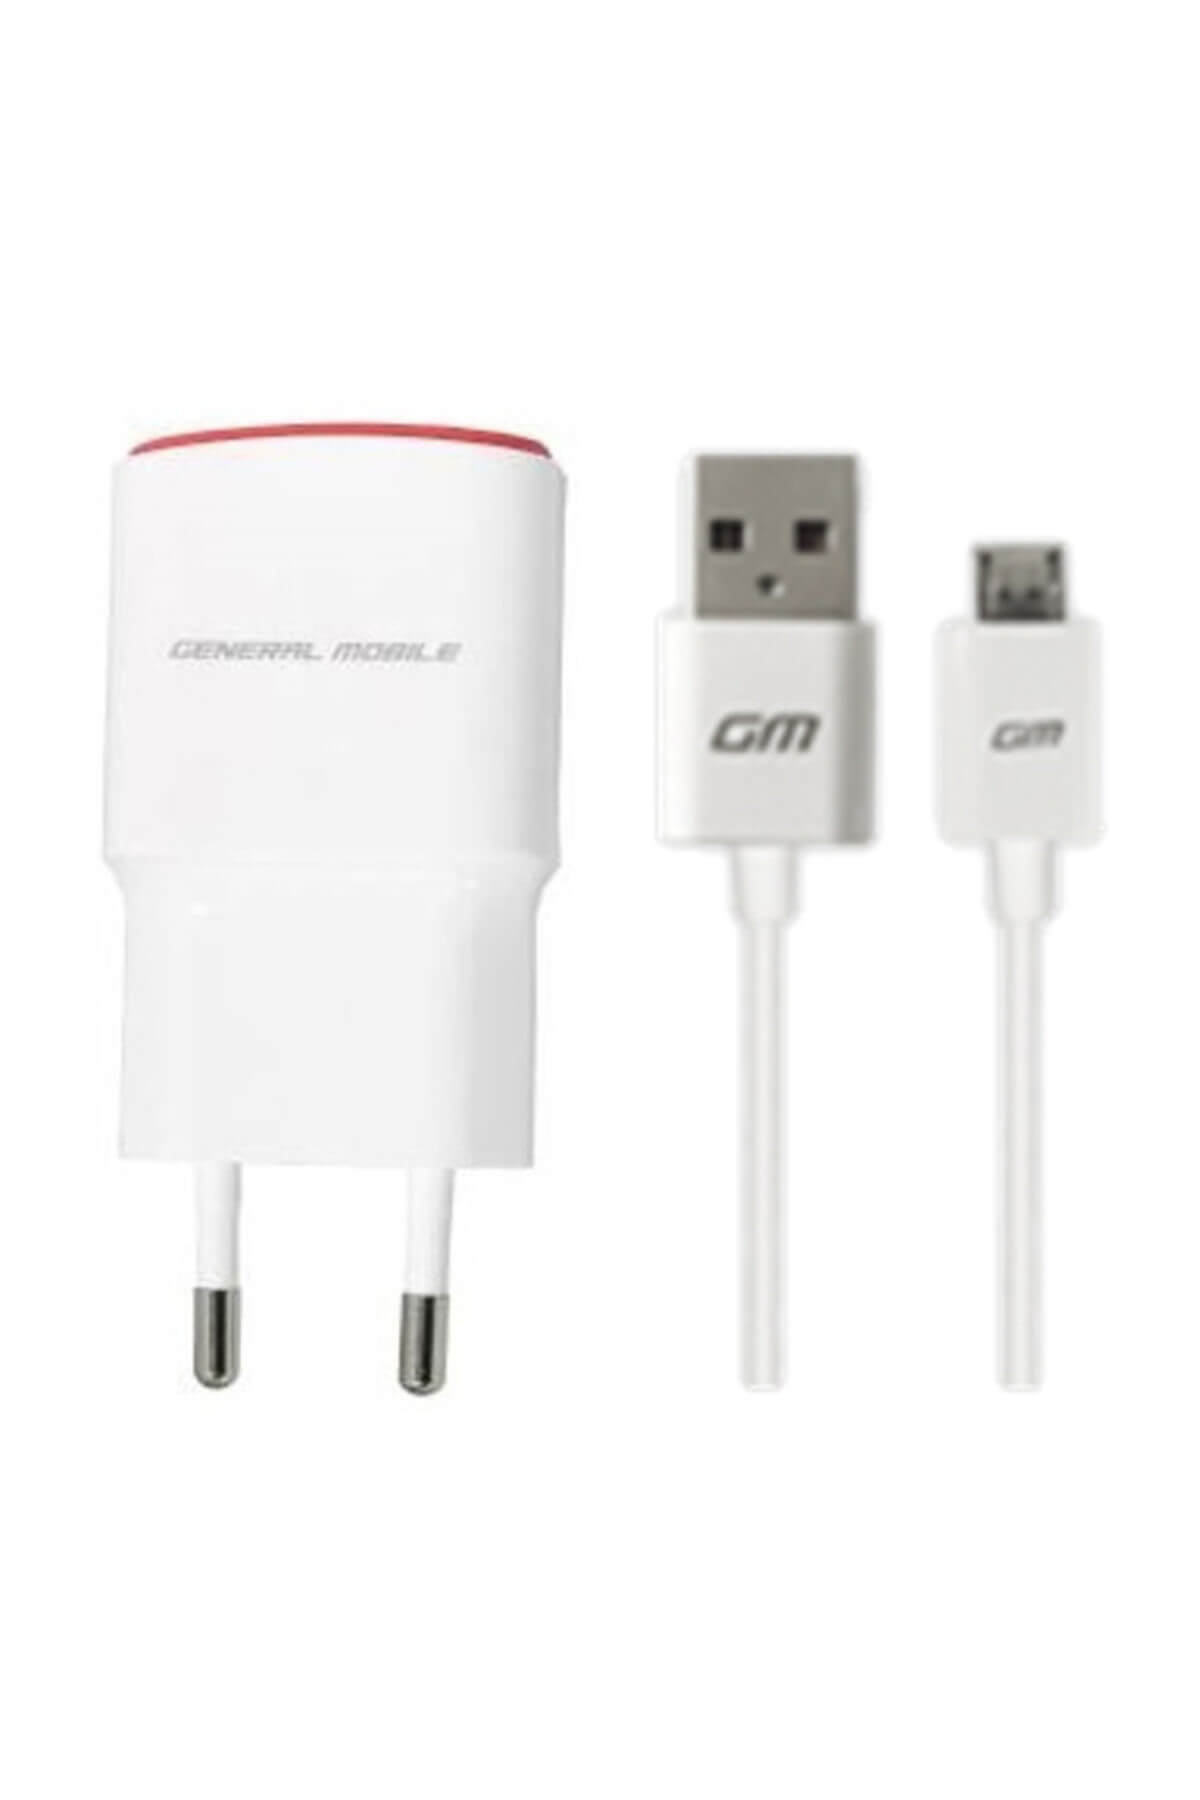 General Mobile Gm 6 Micro Usb Orijinal Şarj Aleti